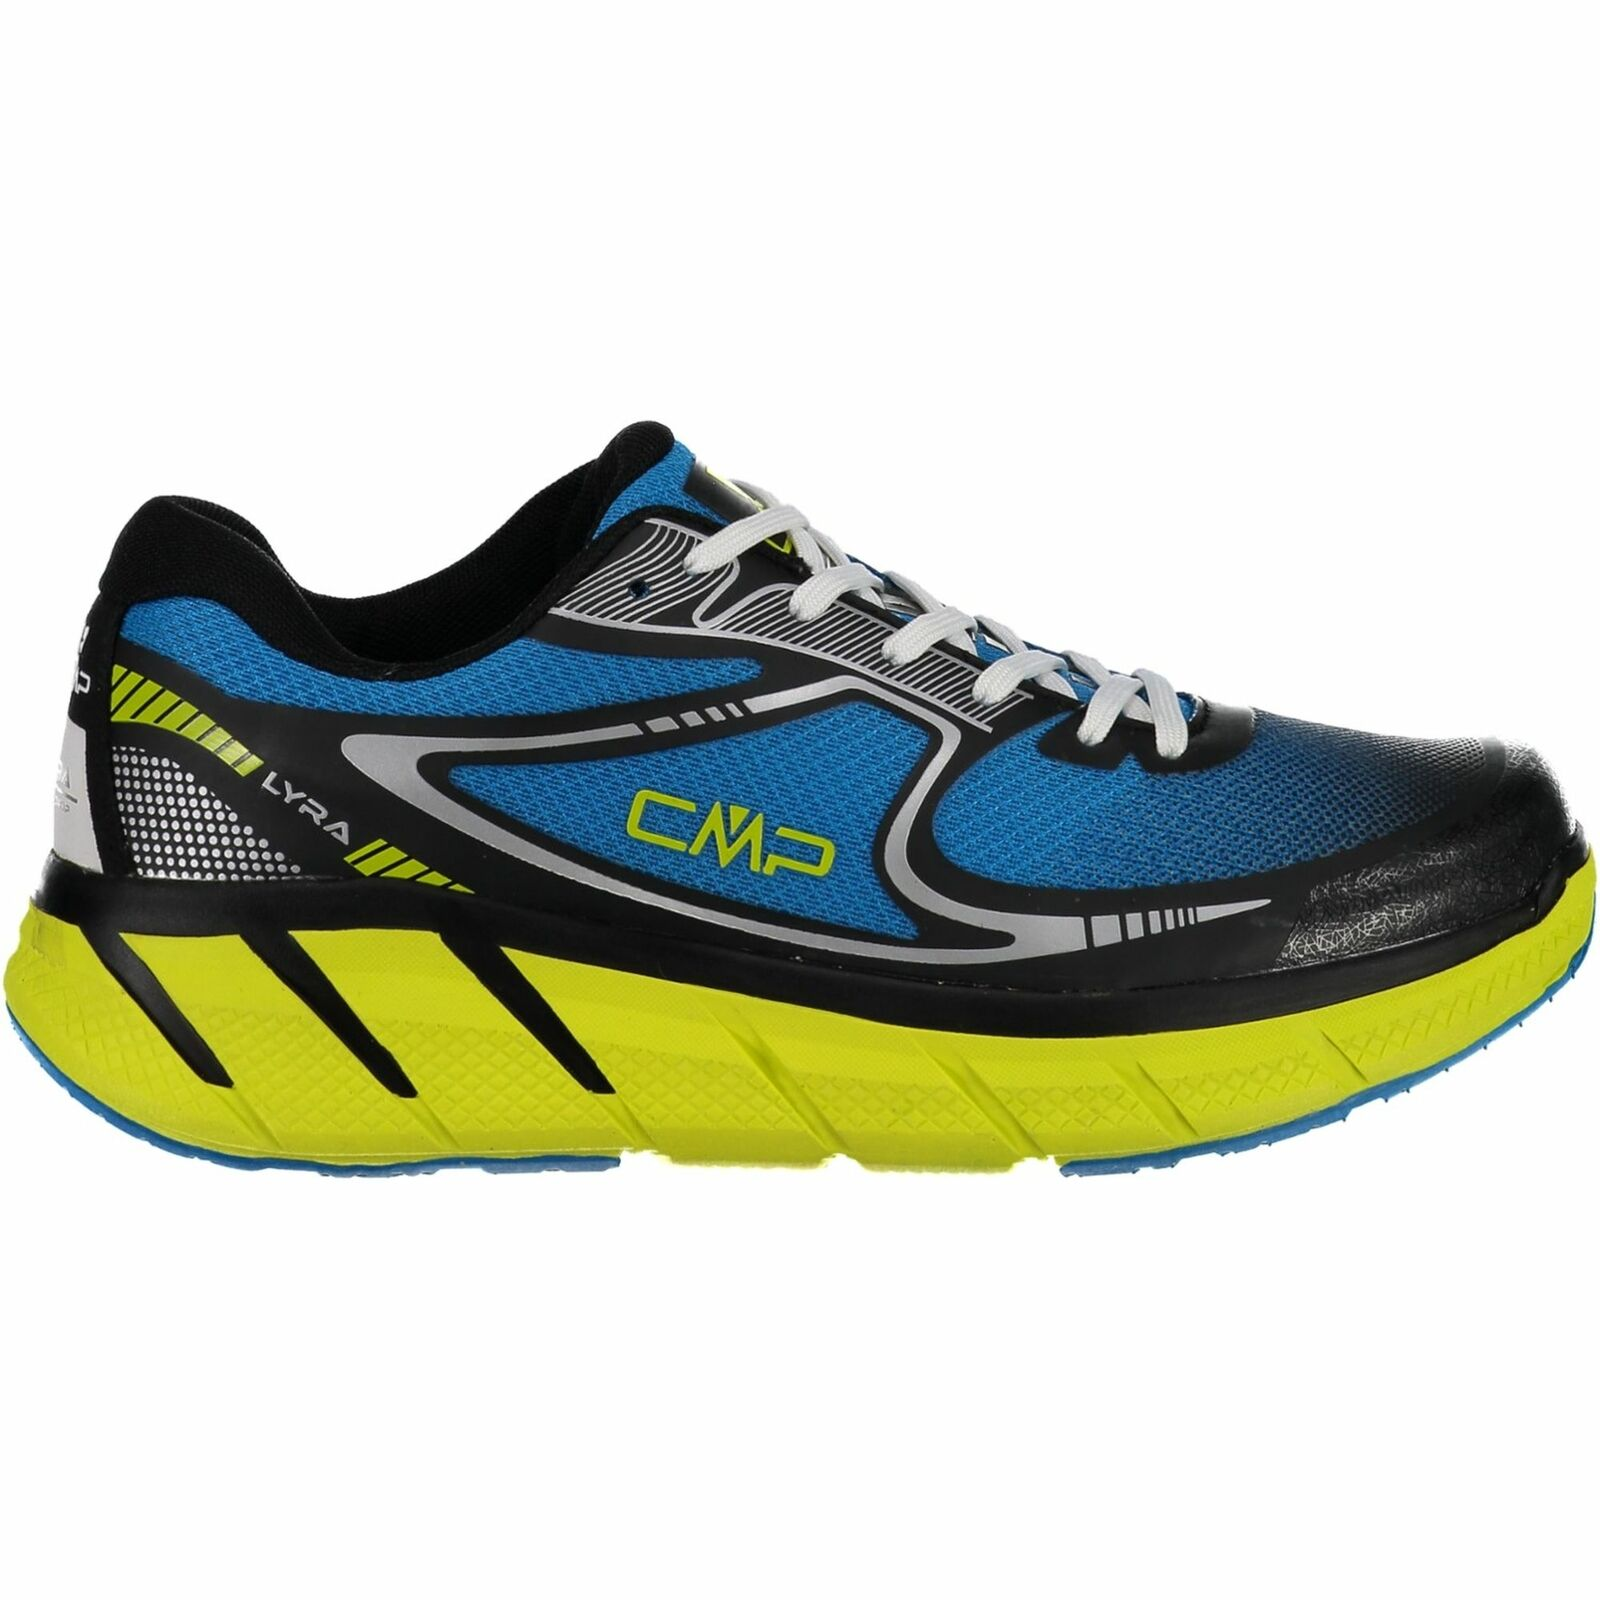 CMP shoes  running lyra maxi running shoe bluee smooth mesh  outlet factory shop